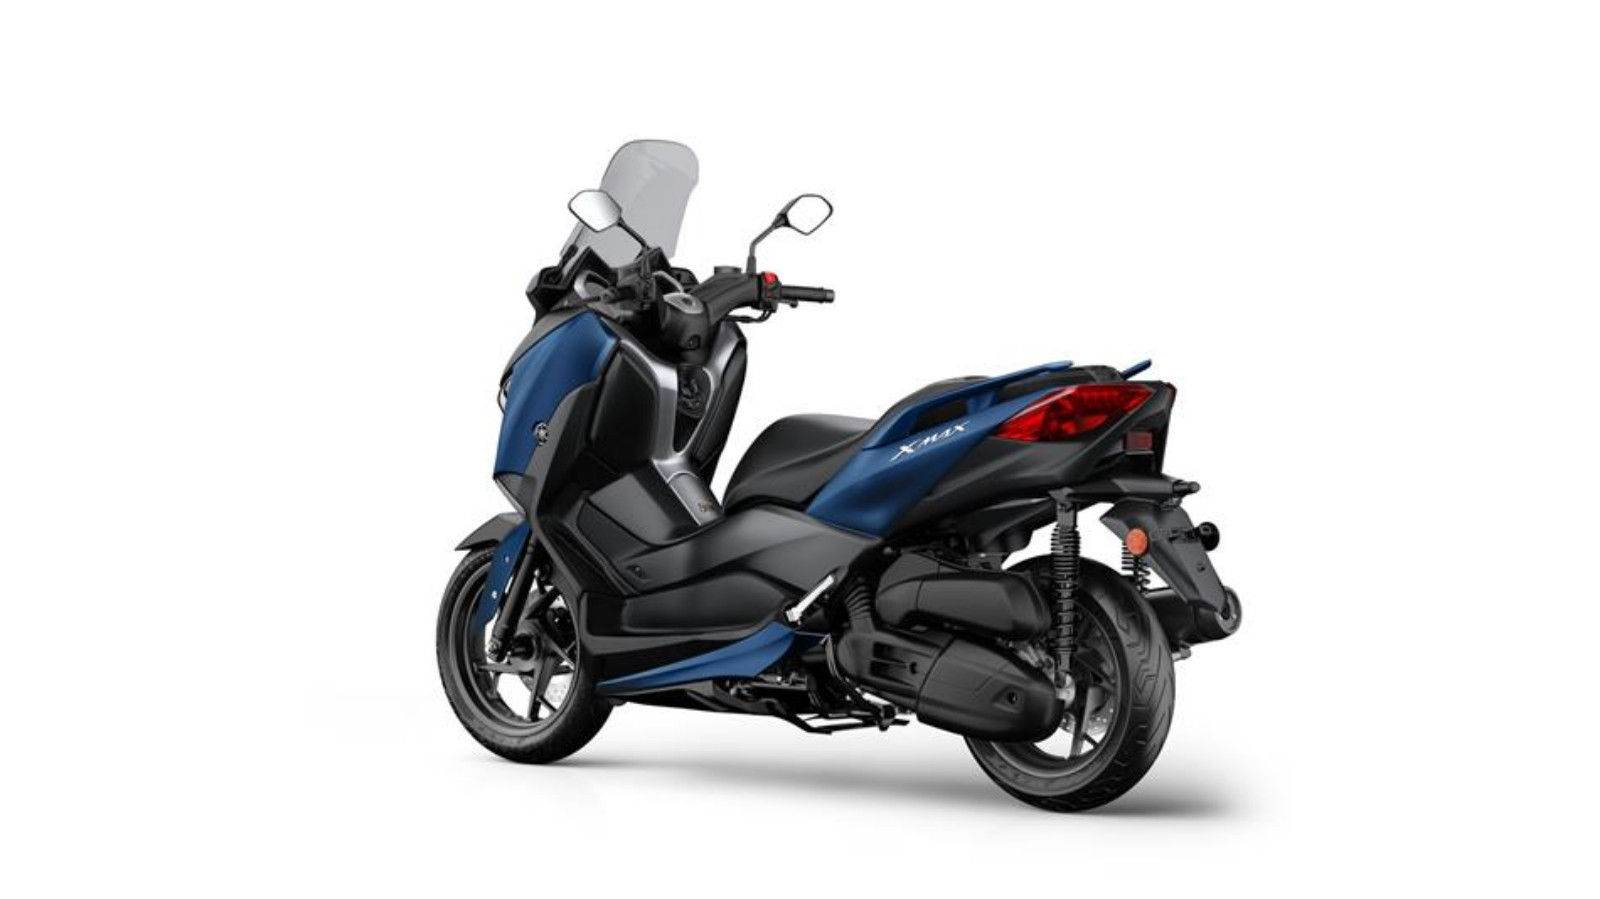 SCR950 ABS ROT SOFORT LIEFERBAR!